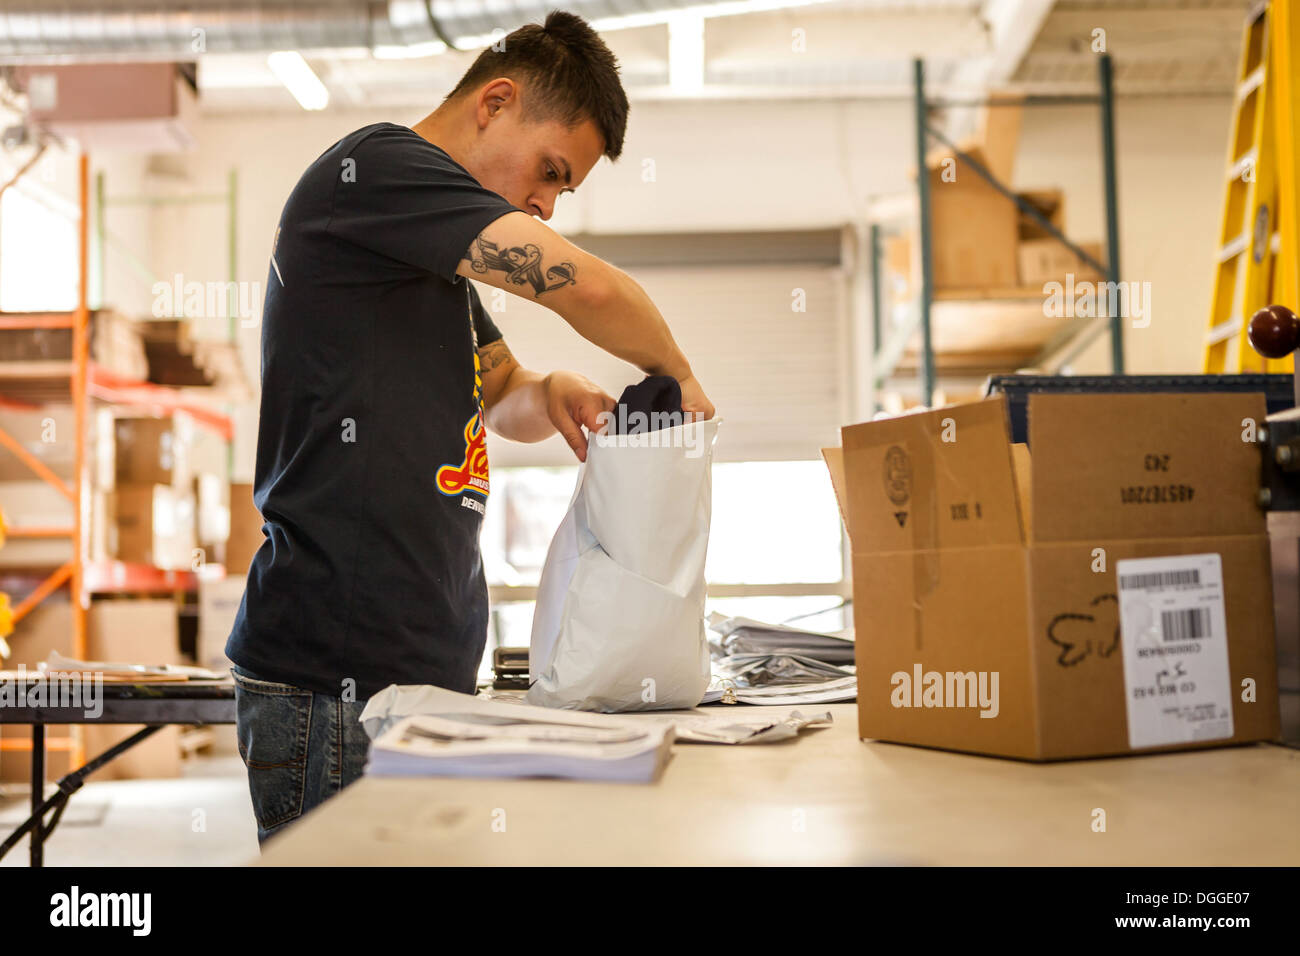 Worker packing garment in screen print workshop - Stock Image